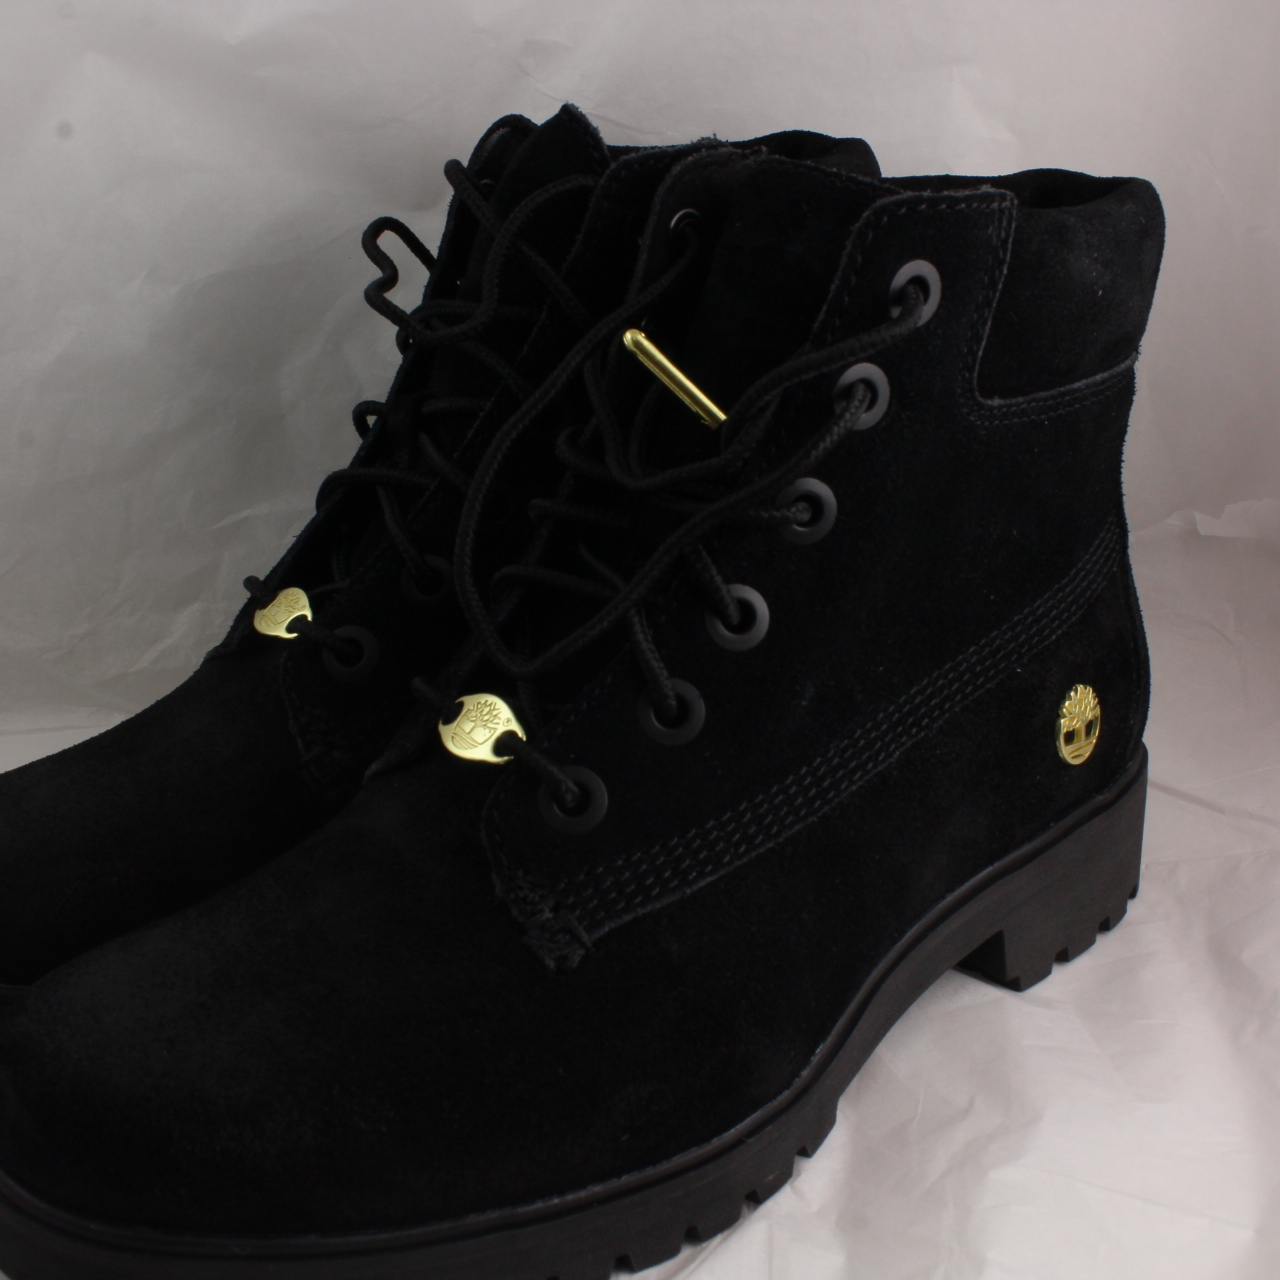 8d1c3939ba4 Womens Timberland Black Leather Lace Up Ankle Boots Size UK 5 *Ex ...